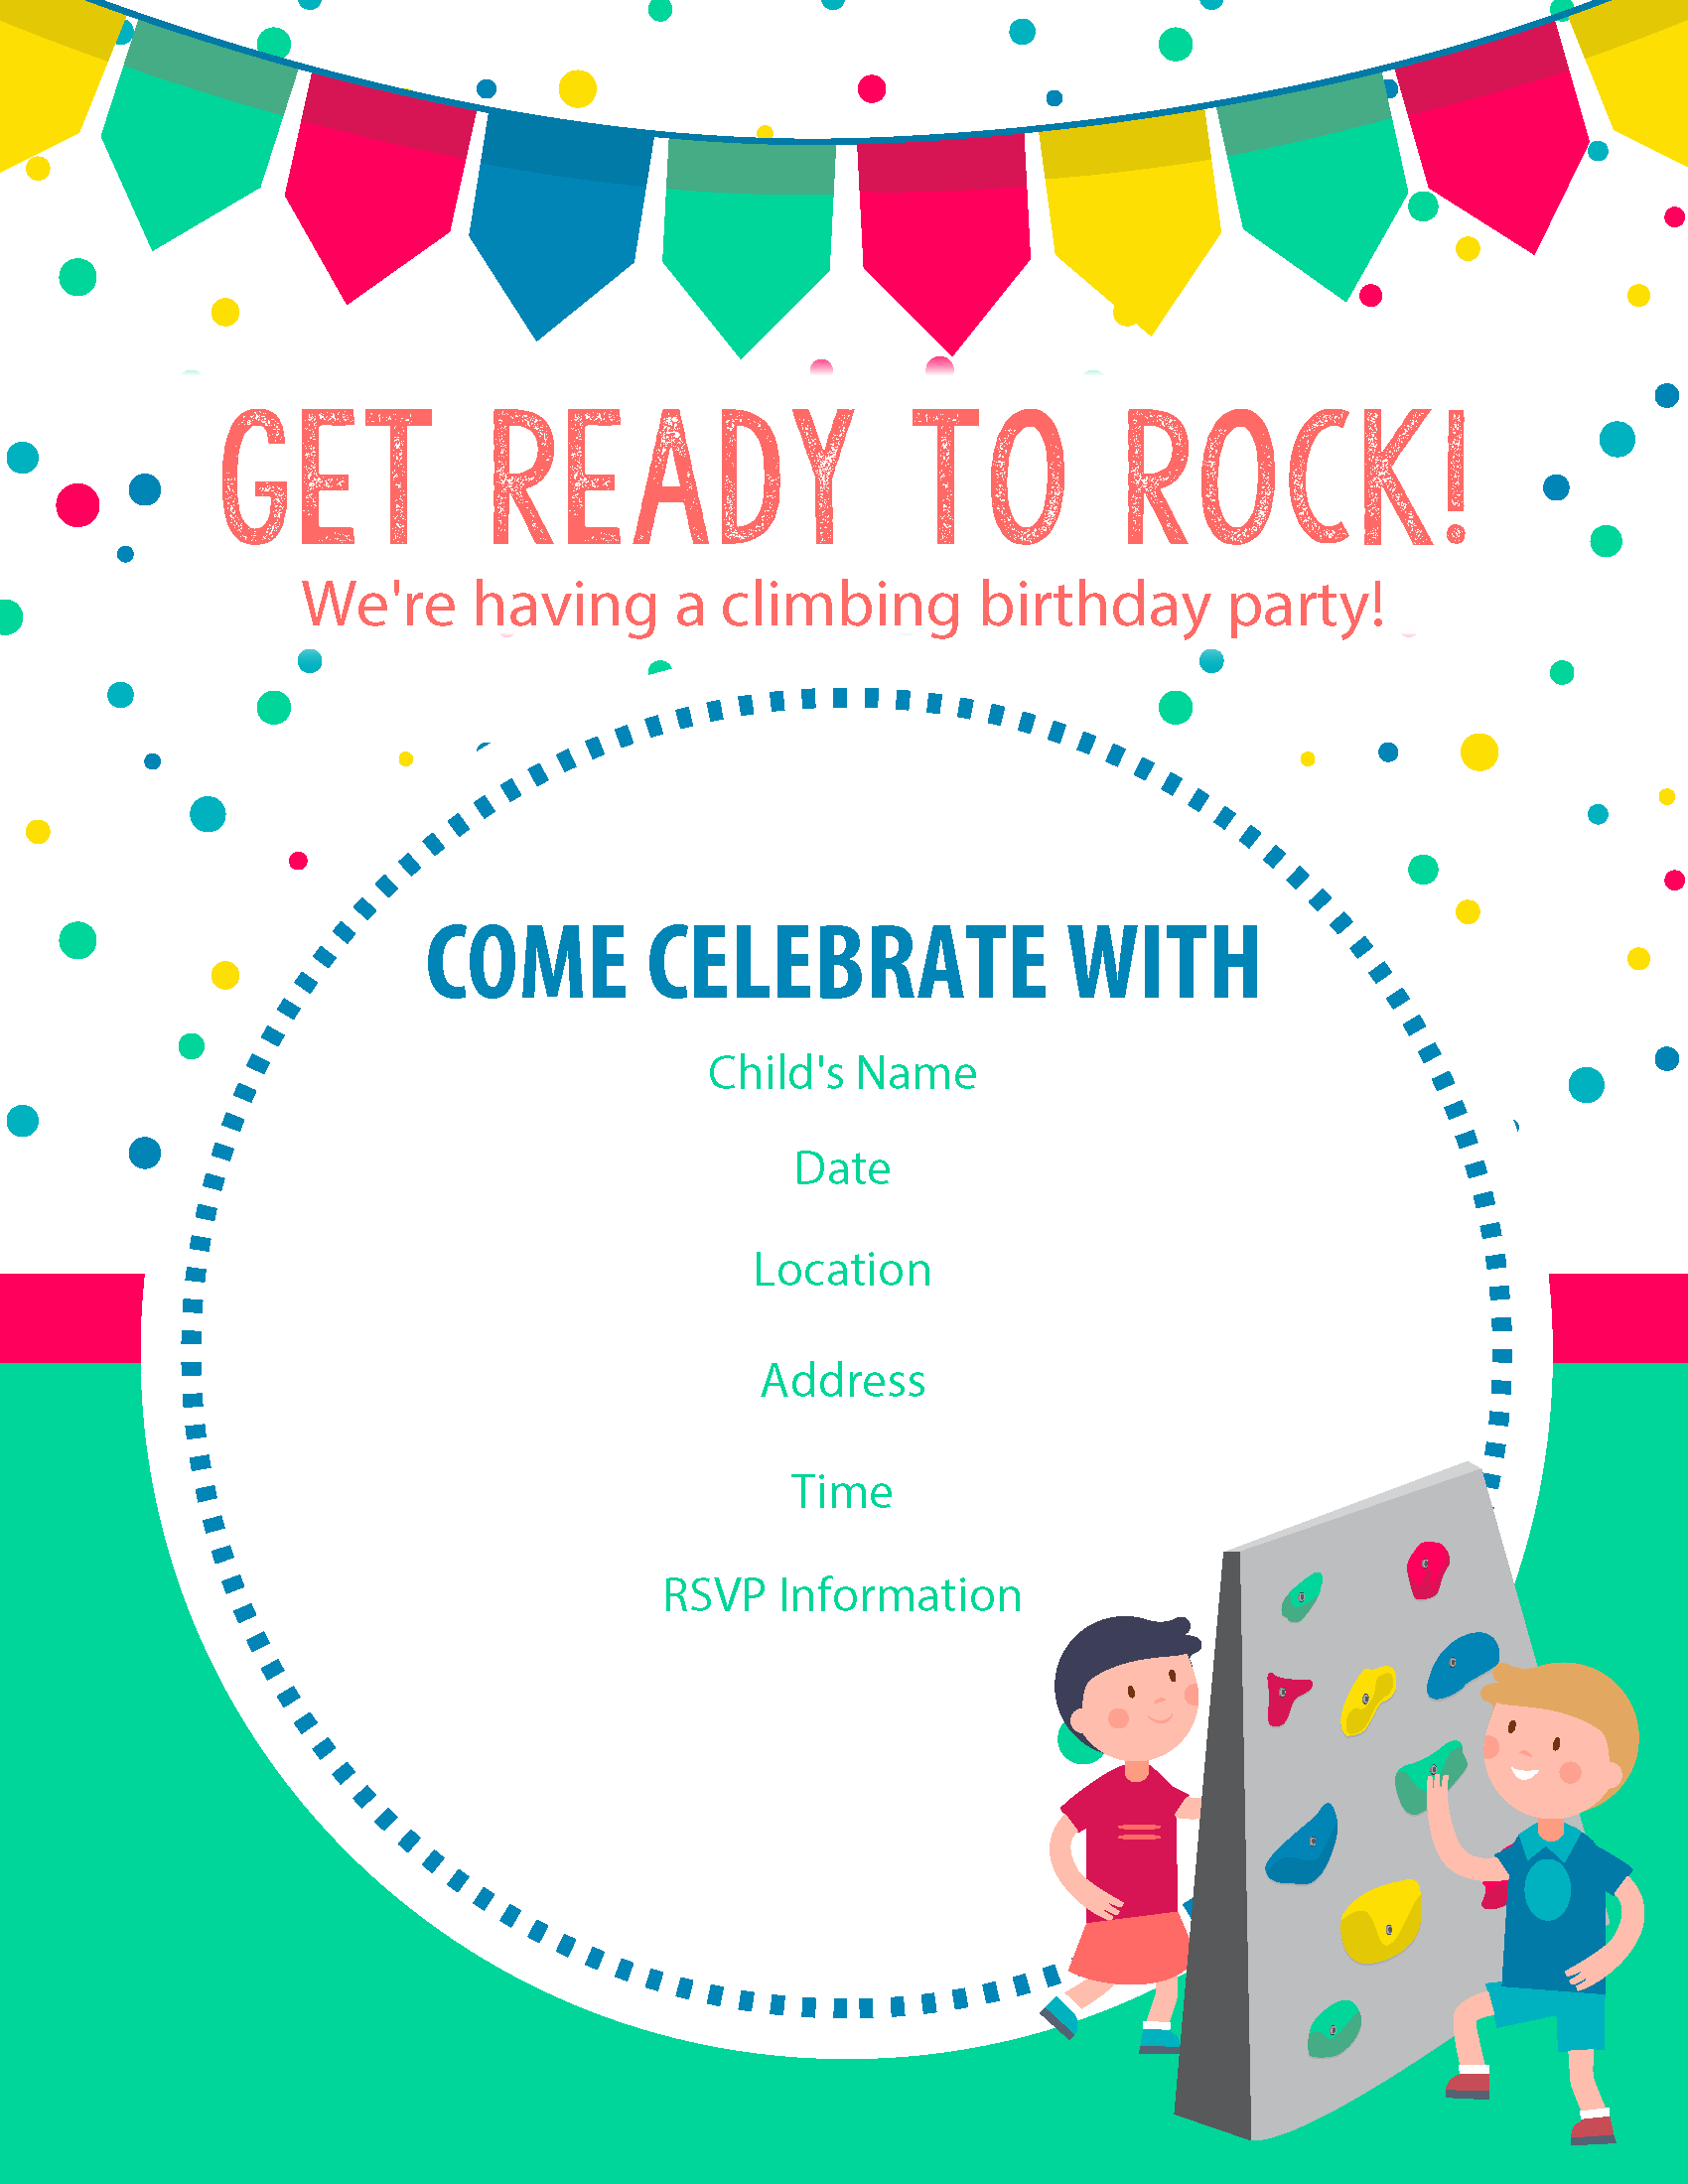 happy birthday free rock climbing birthday party invitations